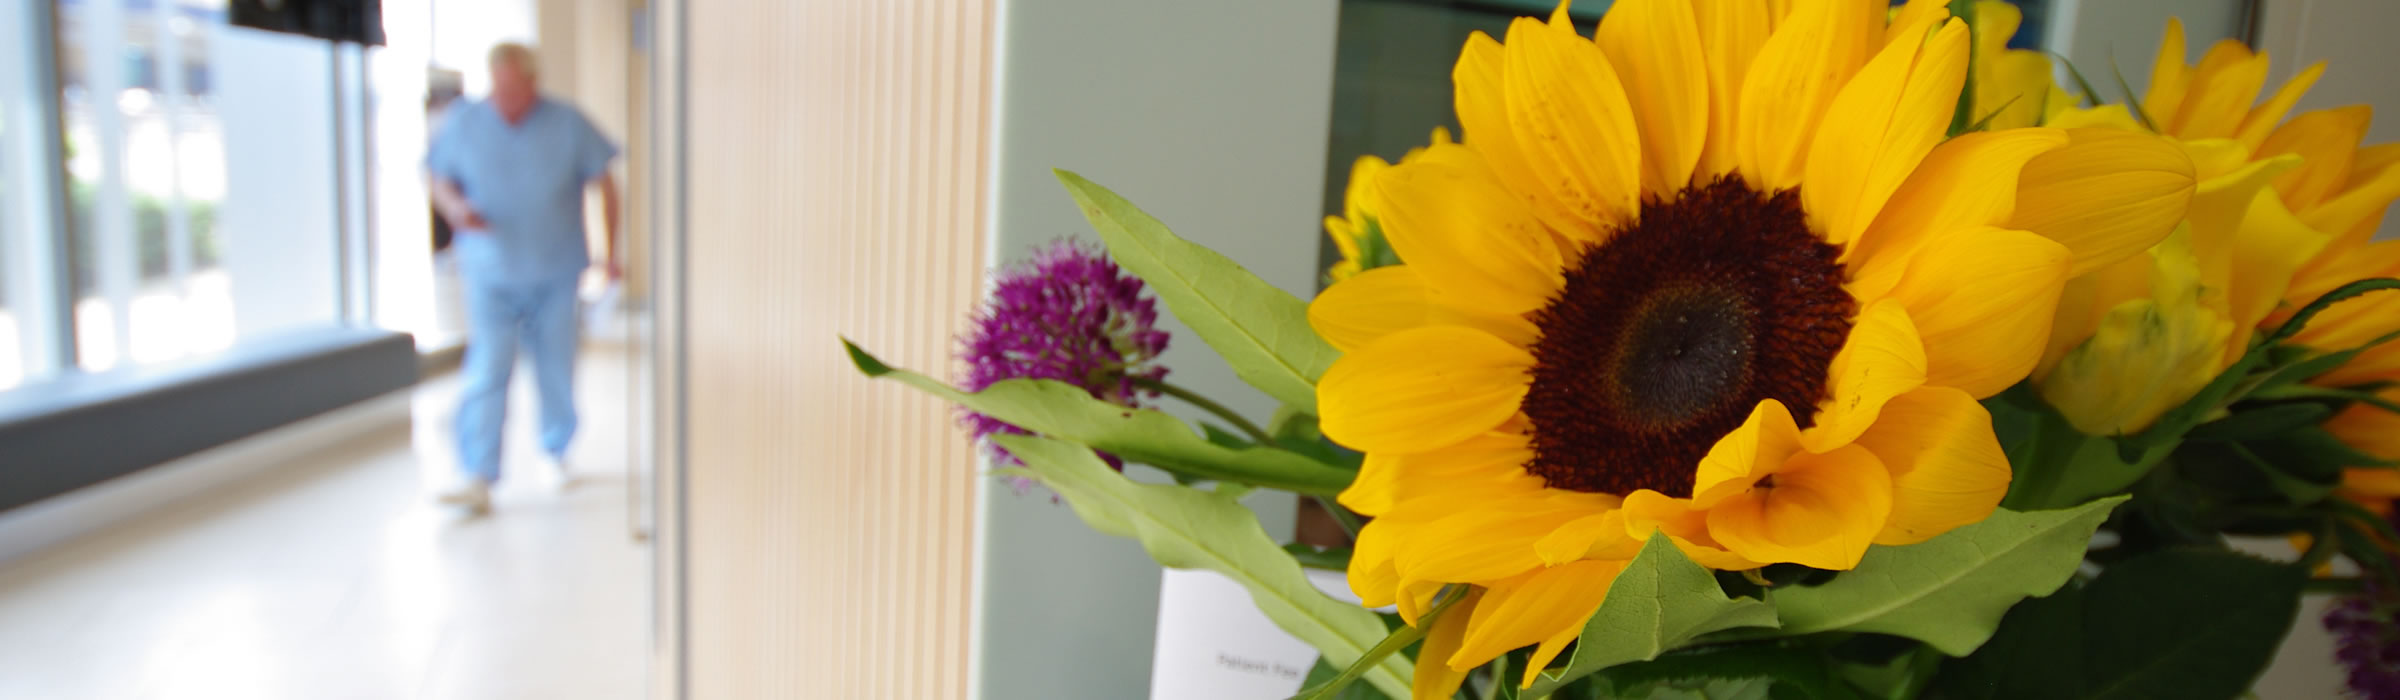 Corridor area owith flowers at Senova Dental Studios Watford dentist in Hertfordshire